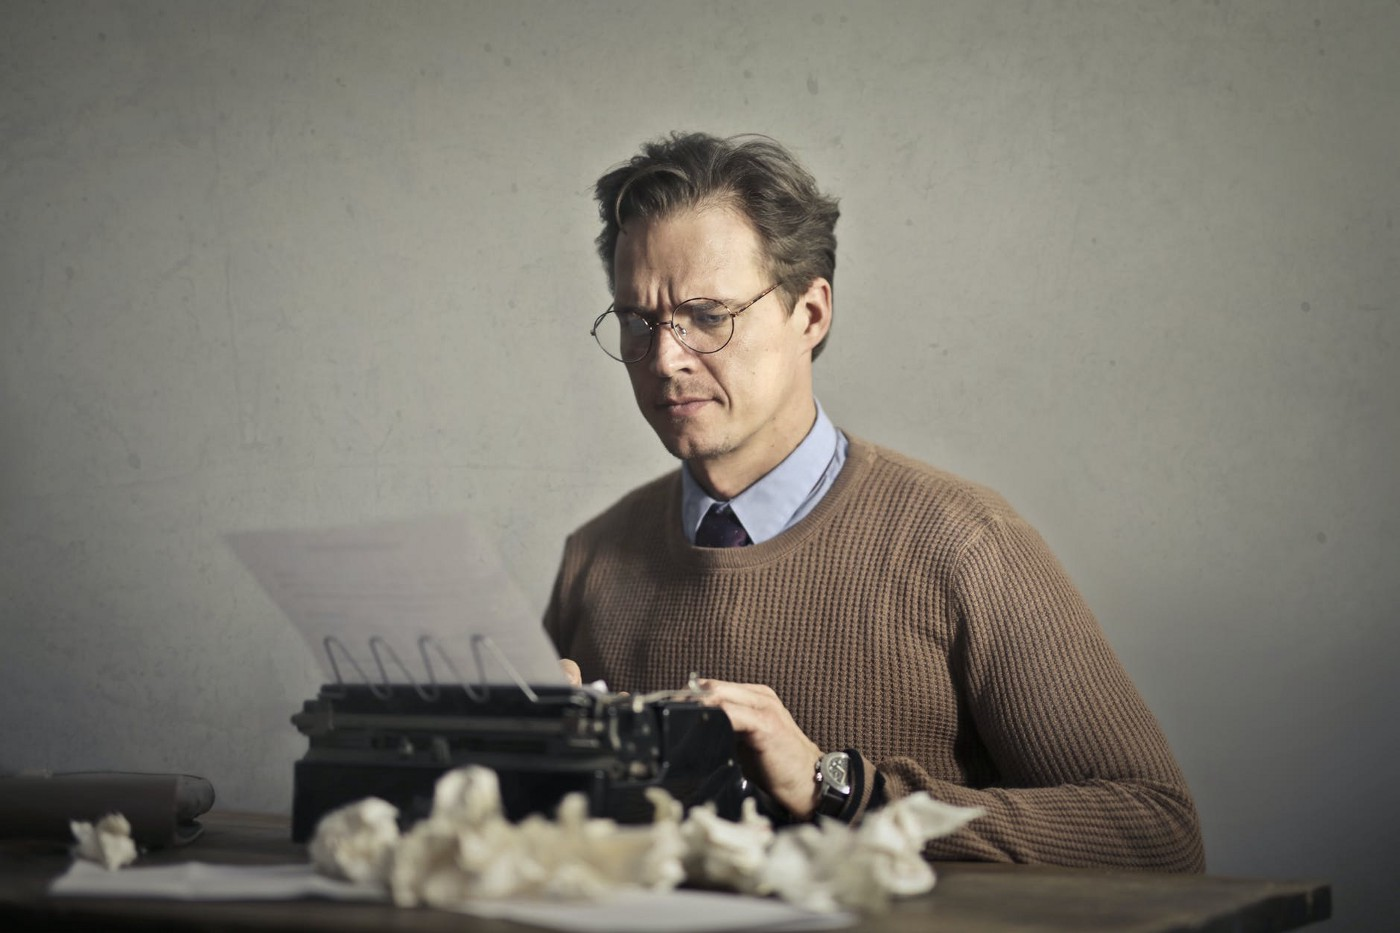 A writer writing yet looking stressed. He doesn't know how to make a living with his writing.